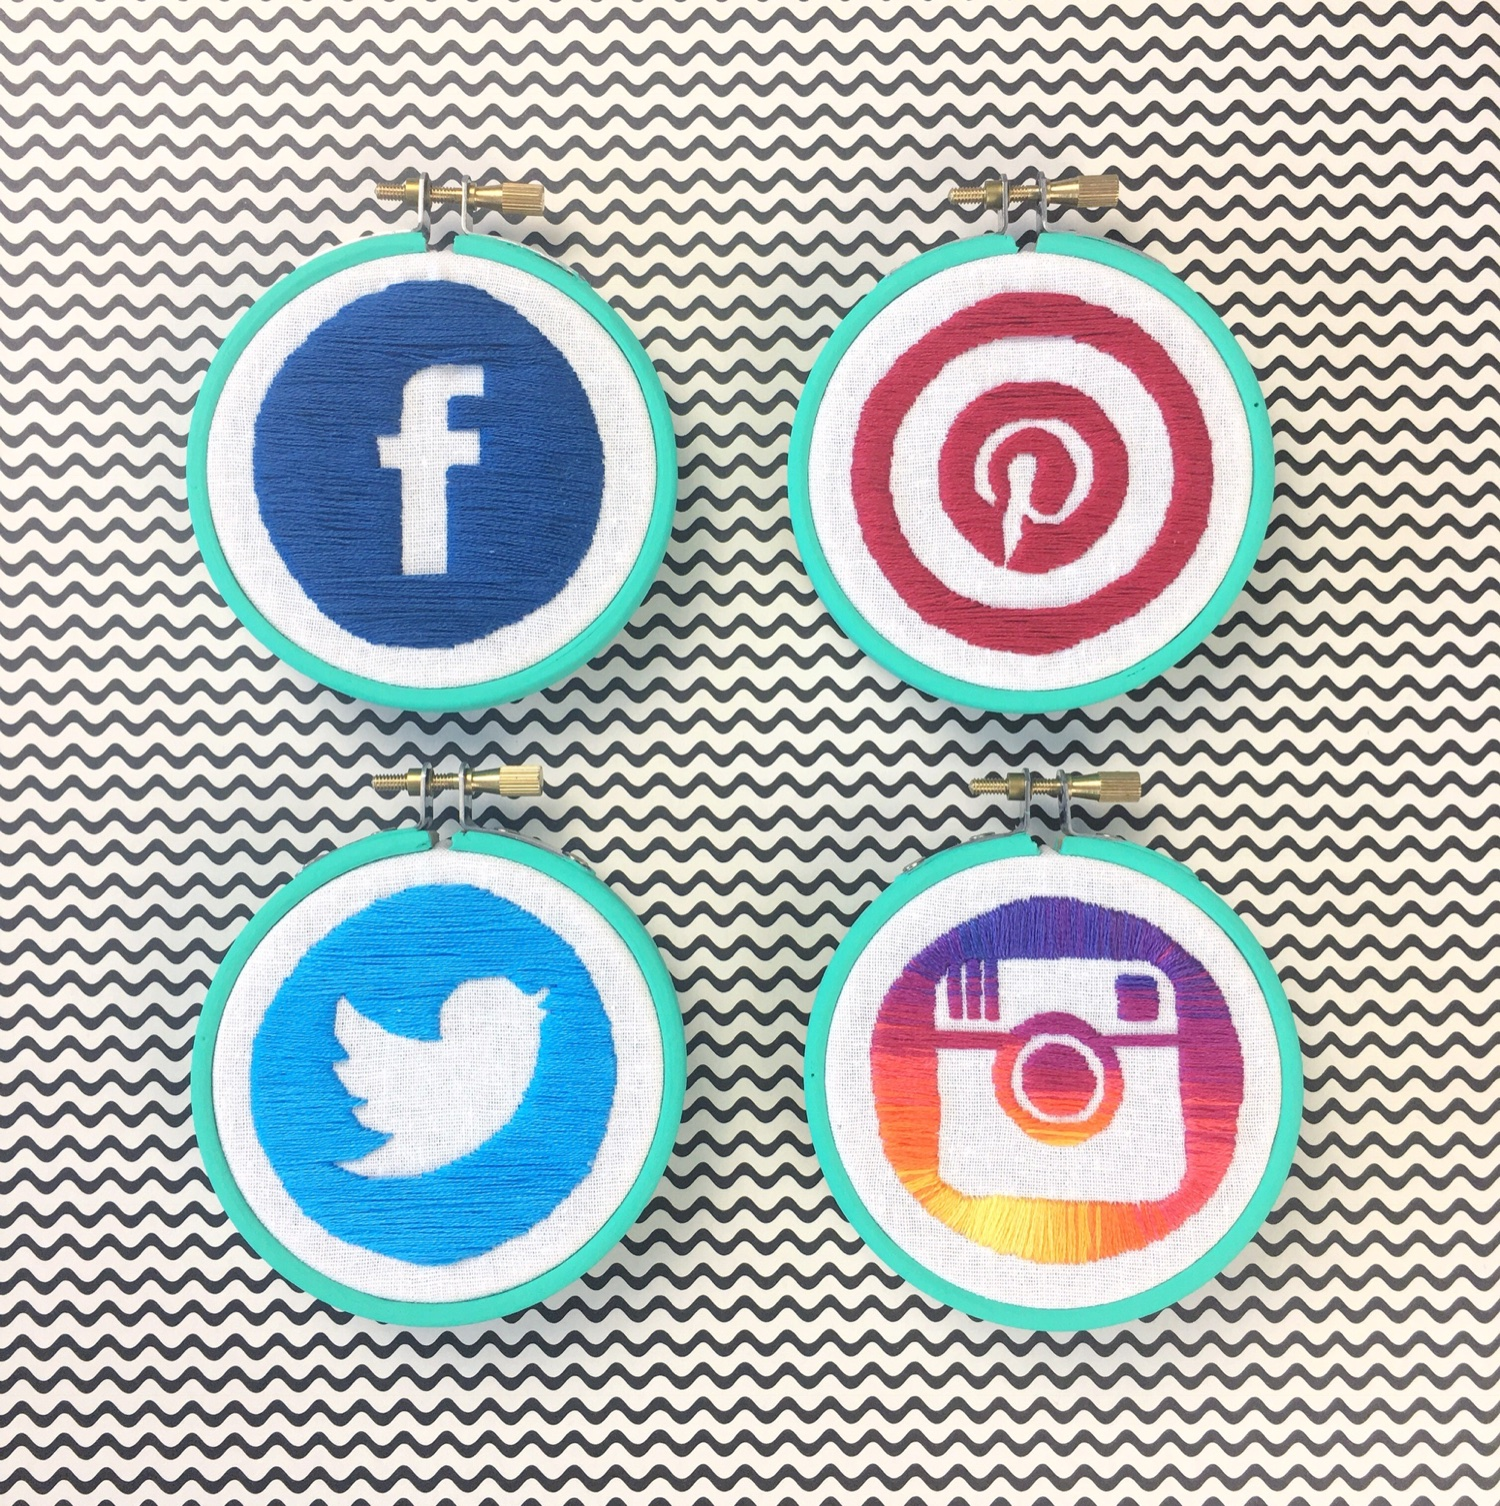 Hand embroidered social media icons